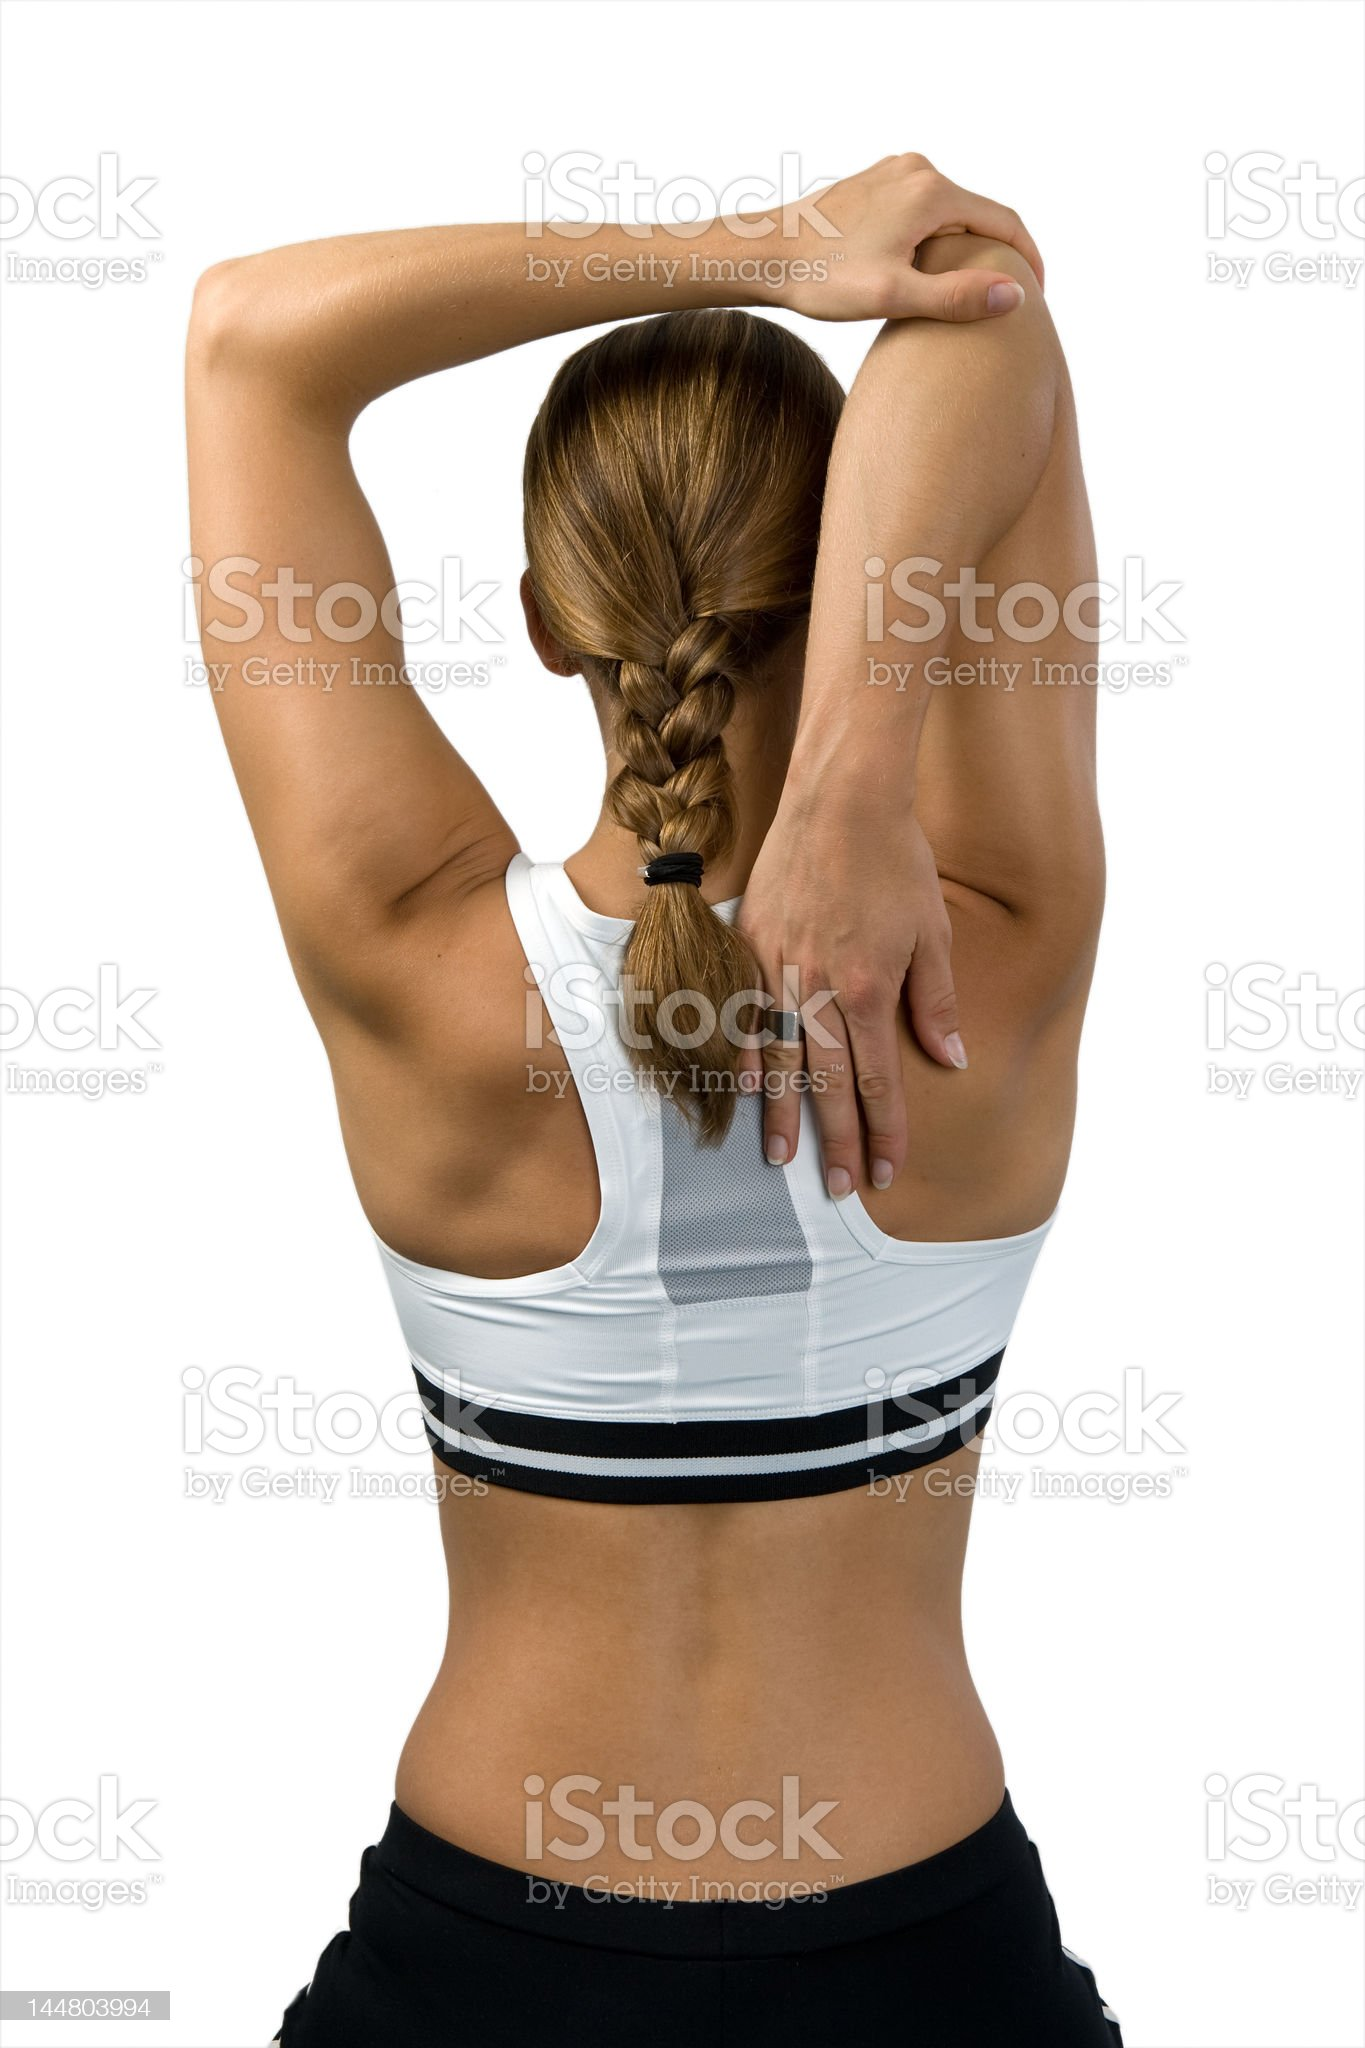 Stretching the muscles royalty-free stock photo